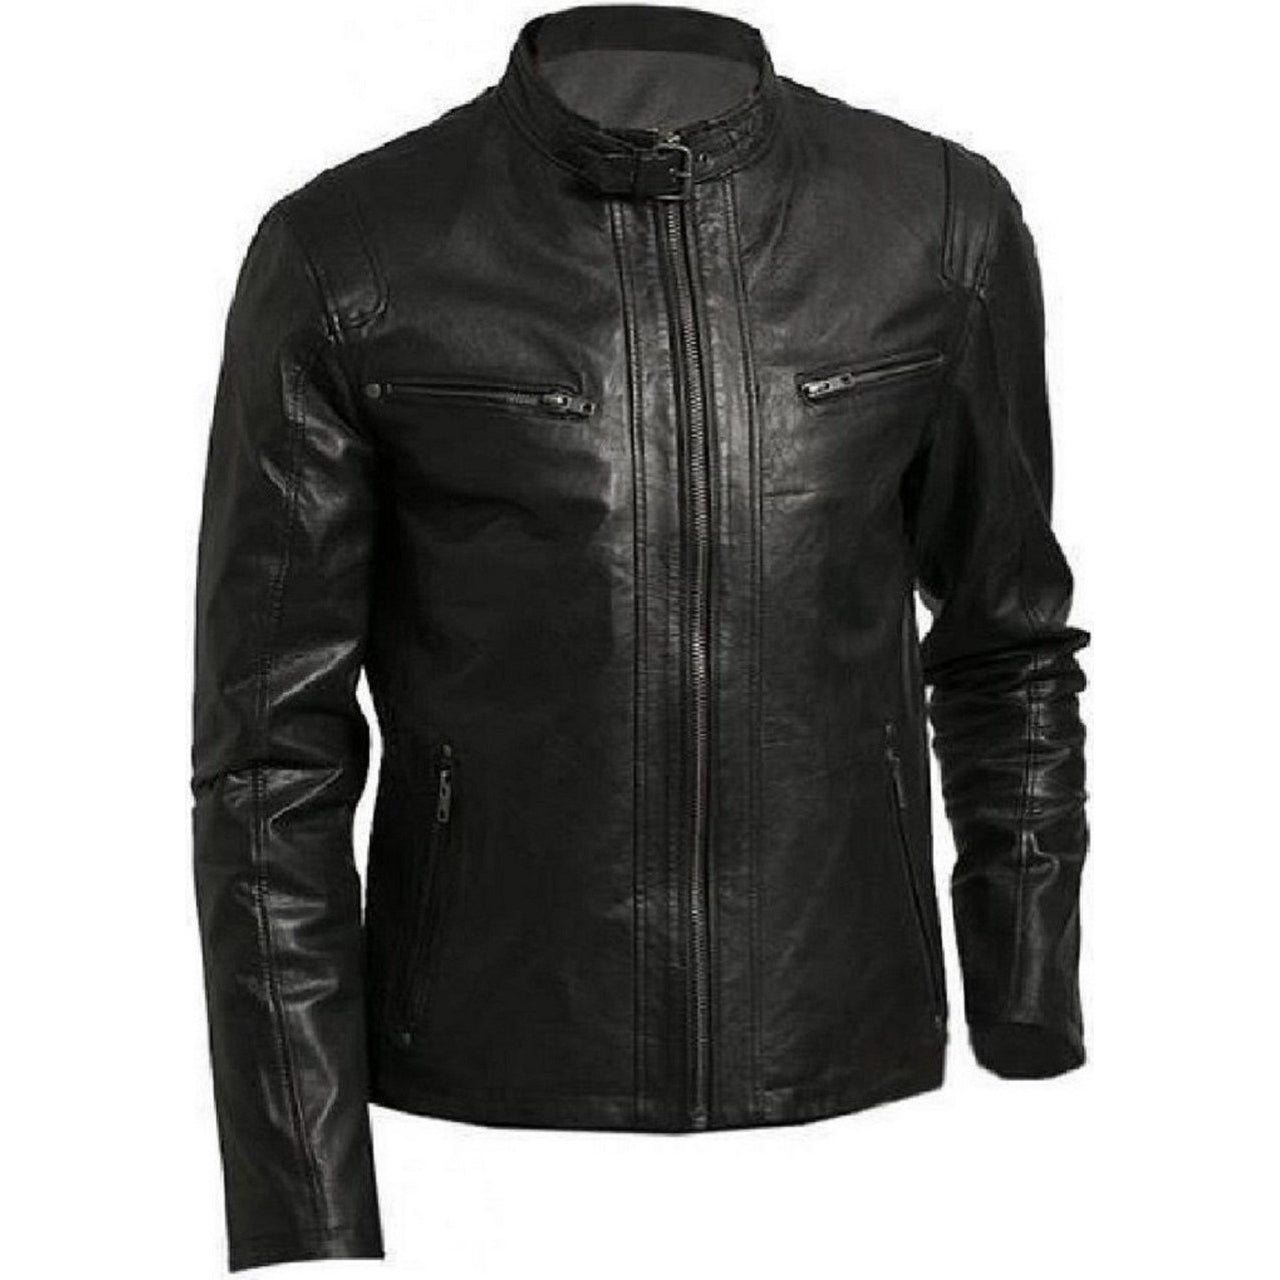 Biker Men Real Lambskin Leather Jacket With Buckle Strap Collar - Leather Jacket